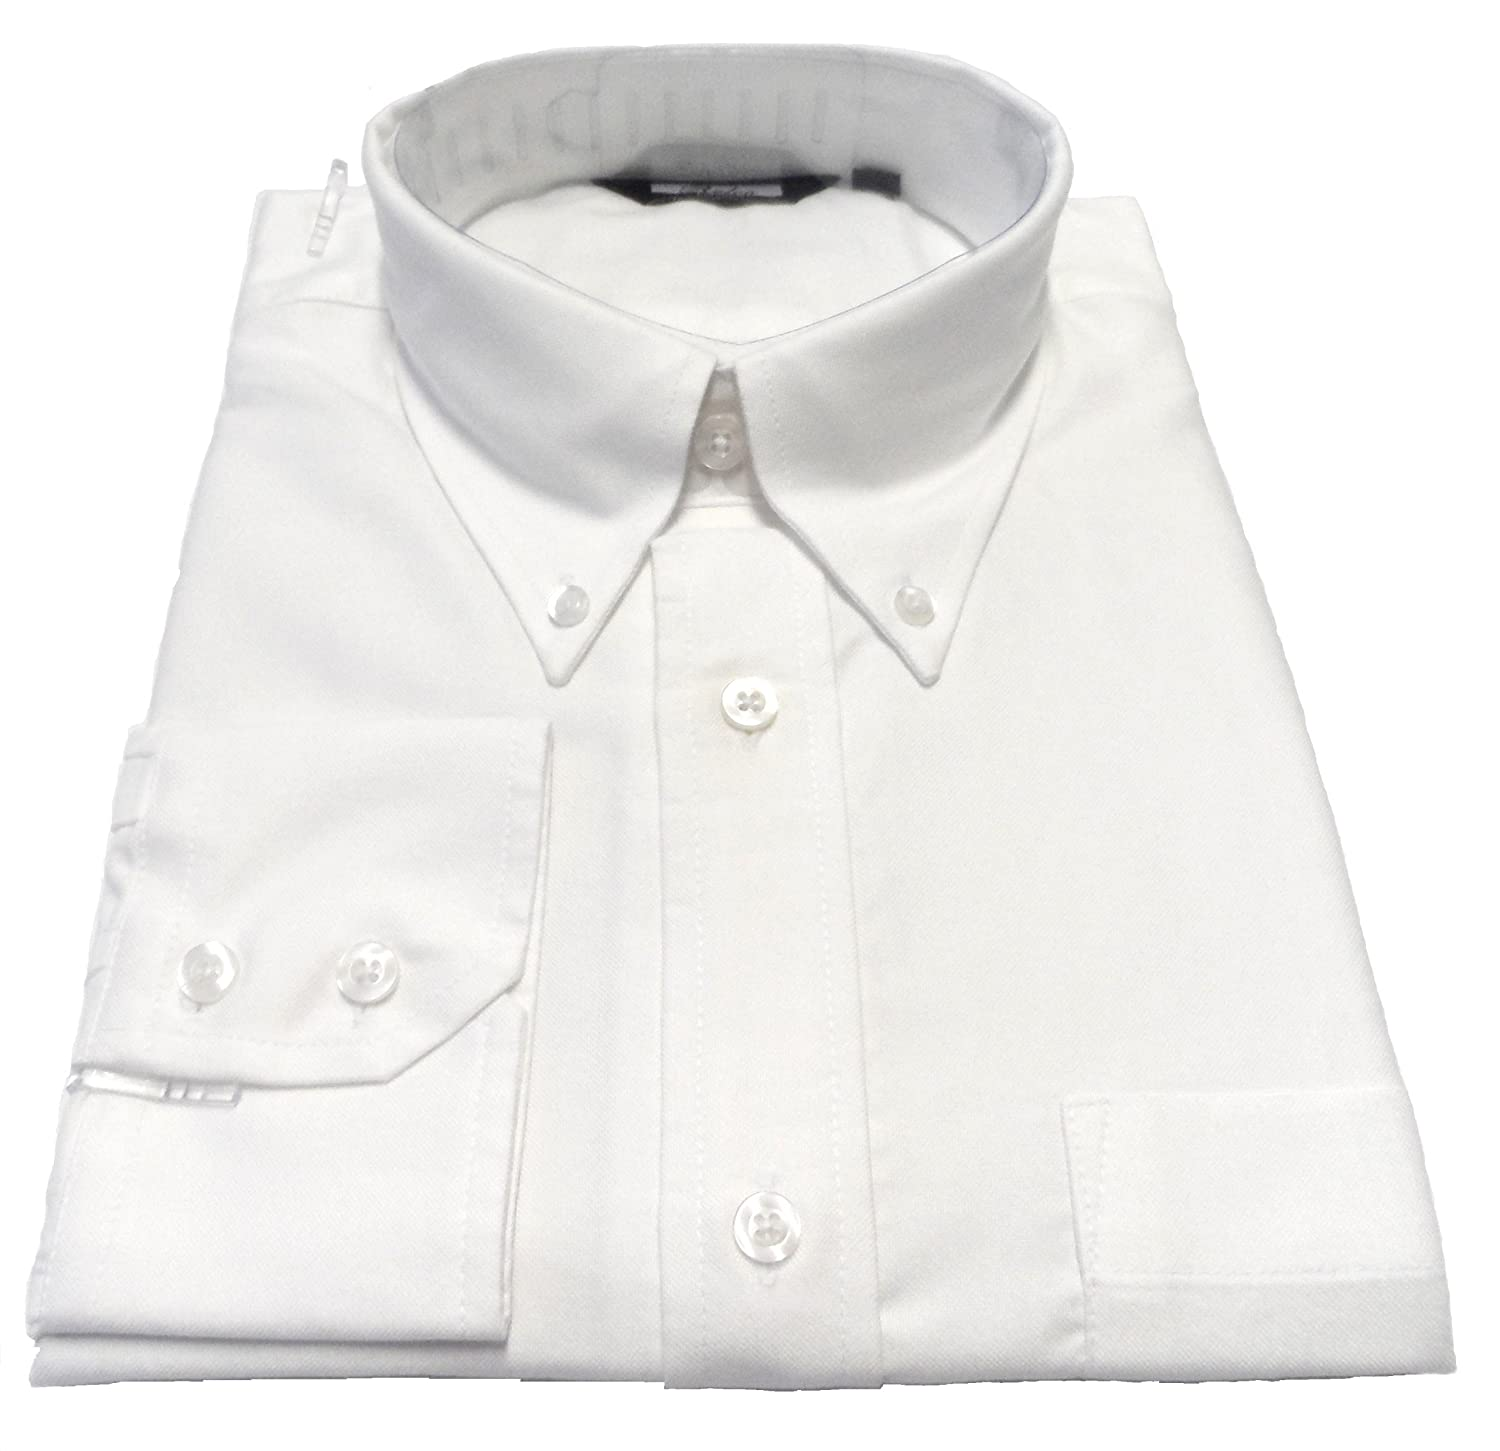 1960s – 70s Mens Shirts- Disco Shirts, Hippie Shirts Relco White Oxford Long Sleeved Vintage/Retro Mod Button Down Shirts £31.99 AT vintagedancer.com